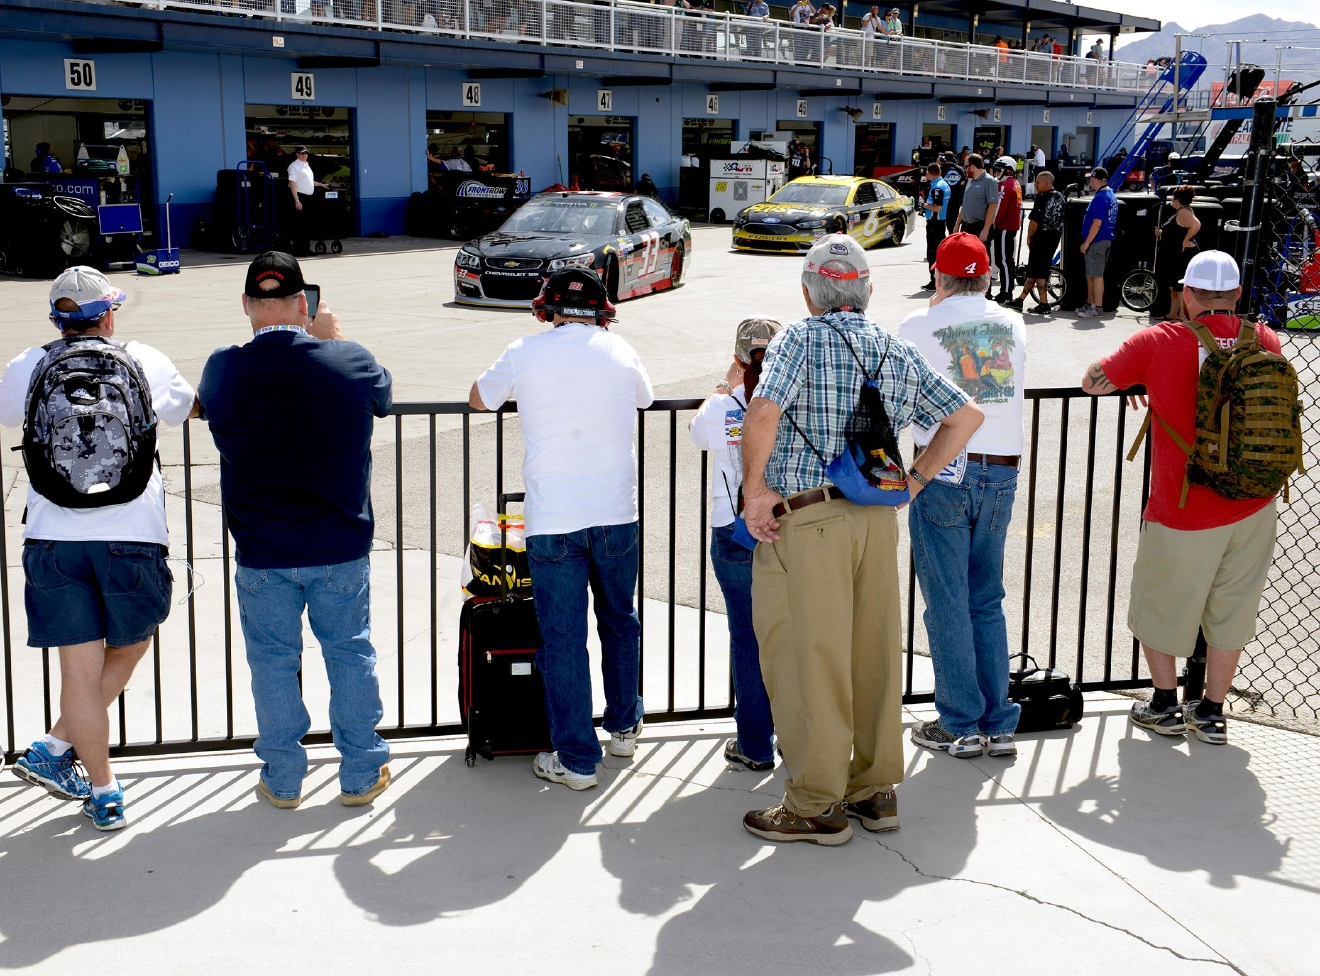 Fans watch as #33 Jeffrey Earnhardt and #6 TArevor Bayne leave the pit area for the track during NASCAR Stratosphere Pole Day at Las Vegas Motor Speedway. Friday, March 10, 2017. (Glenn Pinkerton/Las Vegas News Bureau)